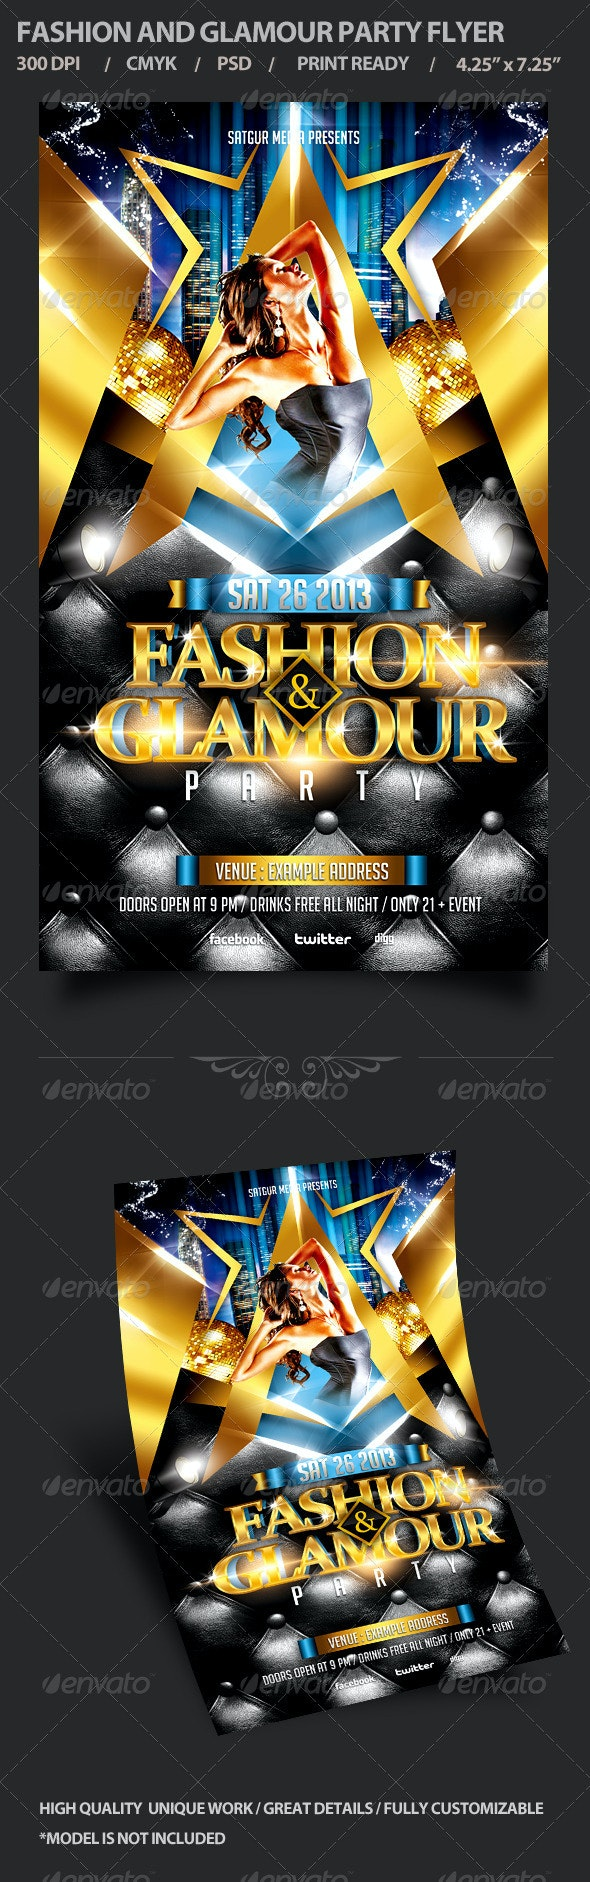 Fashion and Glamour Party Flyer - Clubs & Parties Events